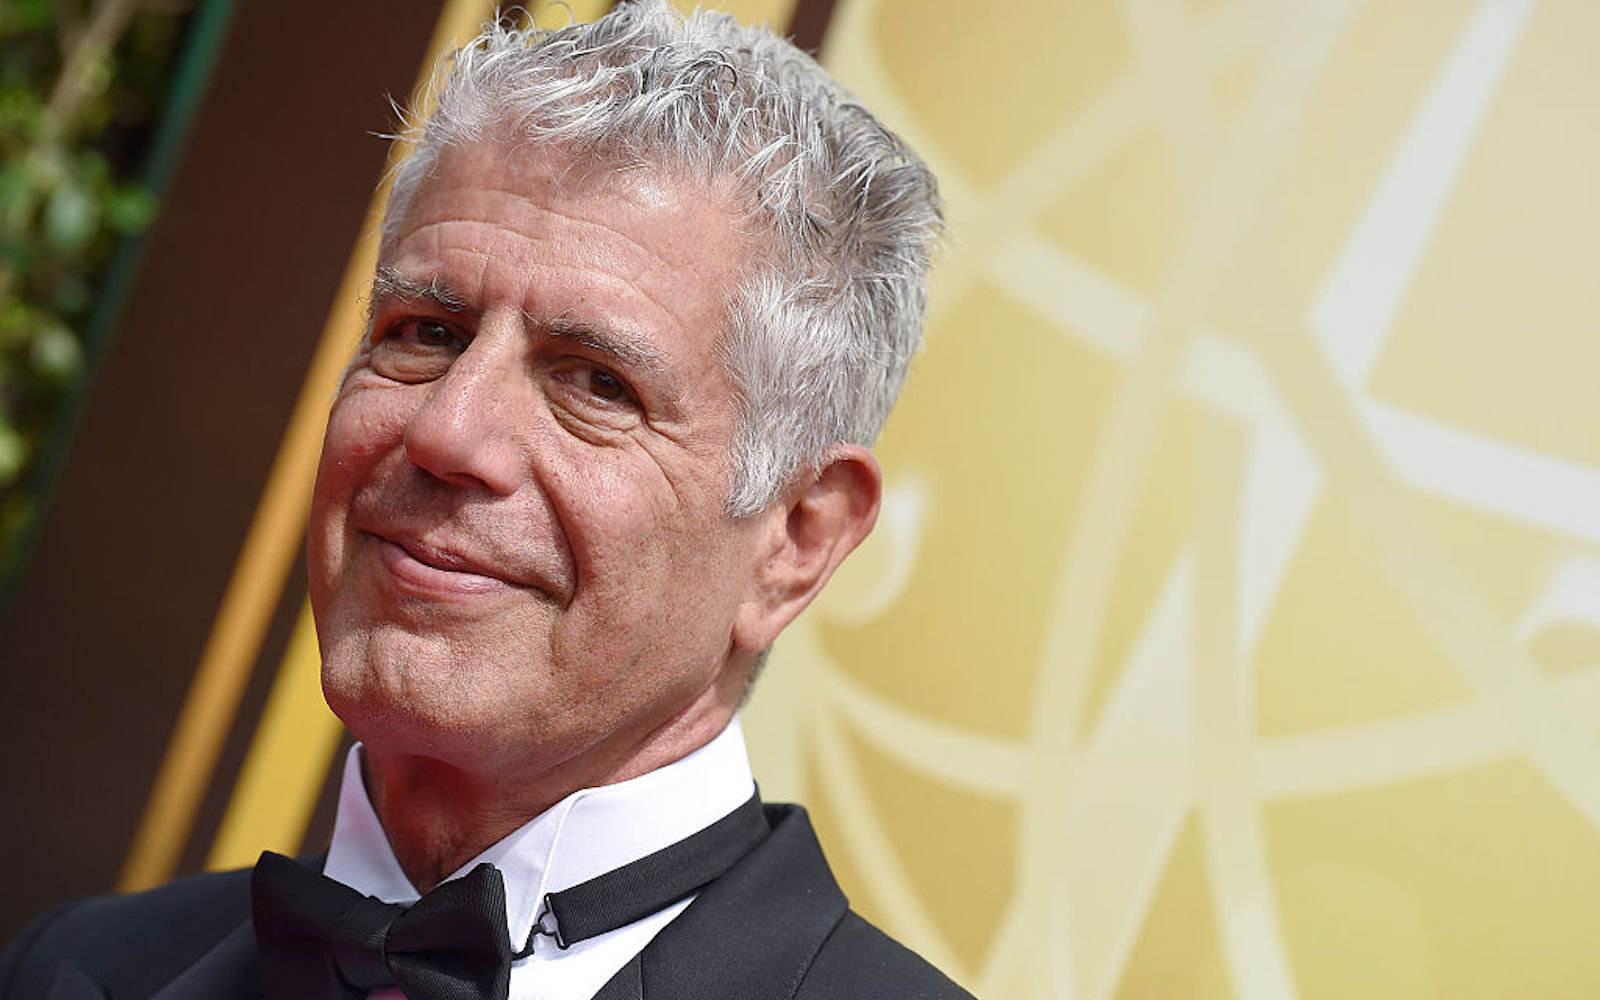 Anthony Bourdain reflects on power of travel to heal heartbreak in resurfaced interview